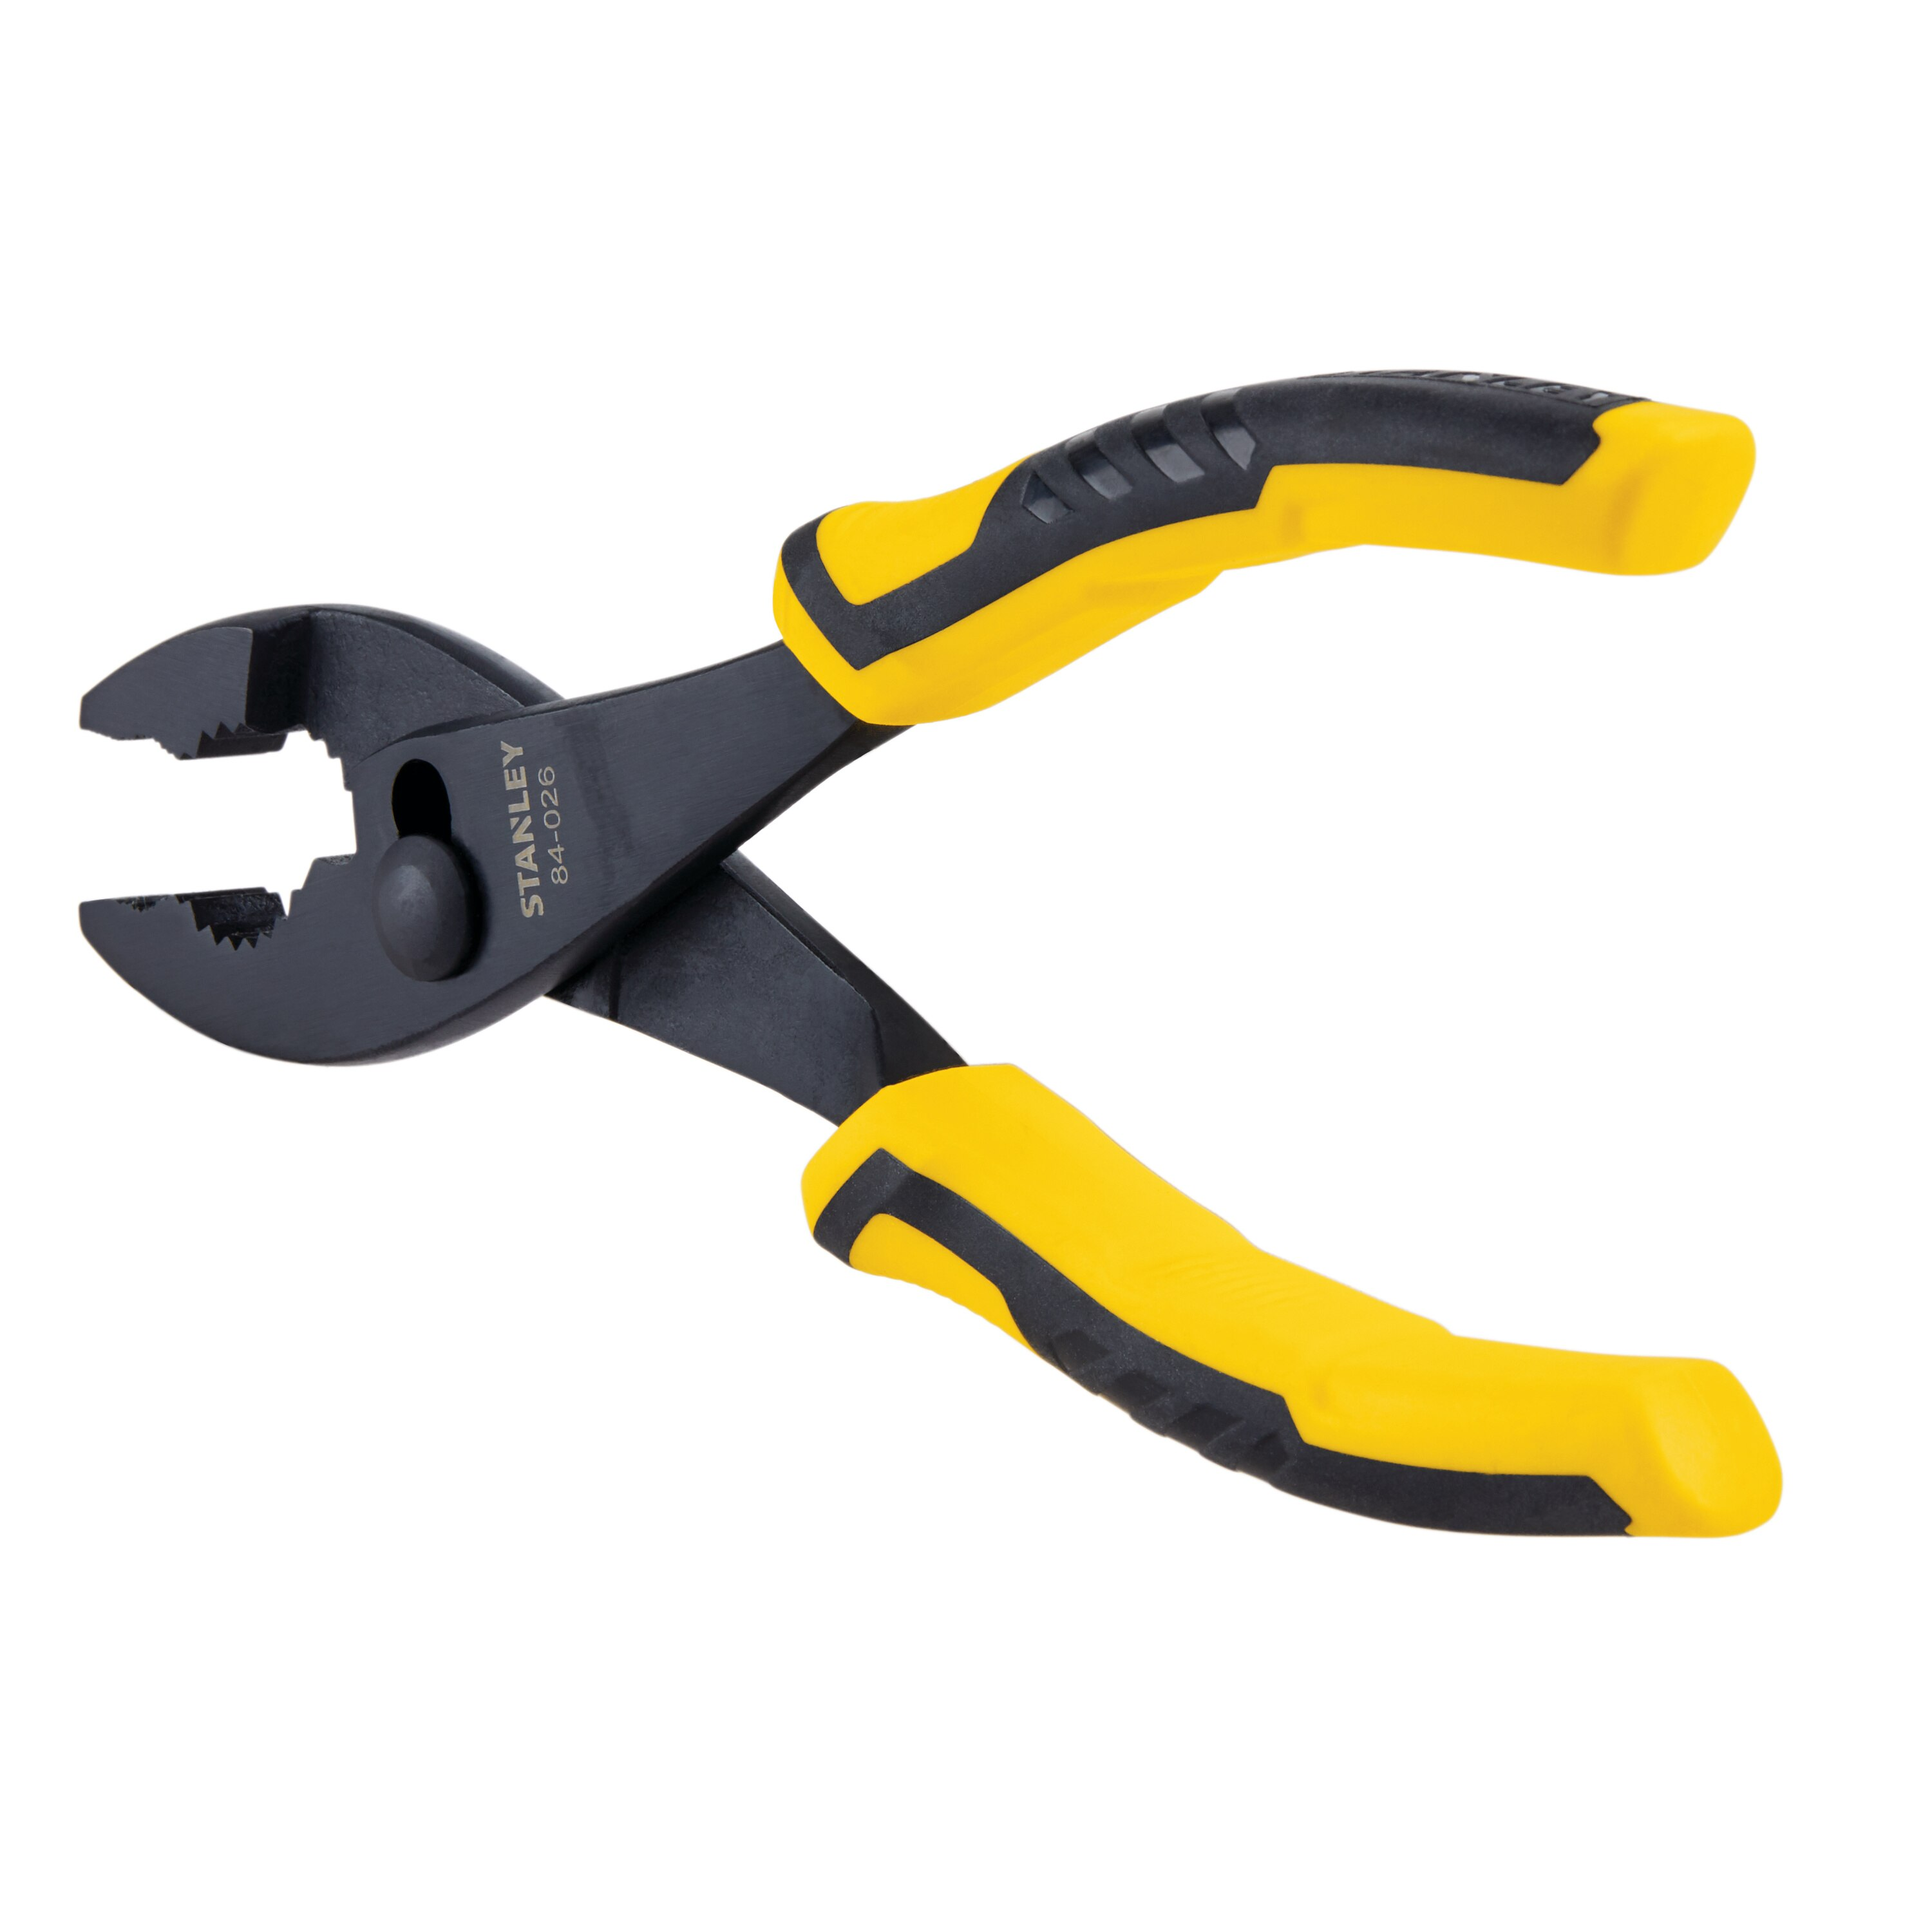 Stanley Tools - 8 in Slip Joint Pliers - 84-026